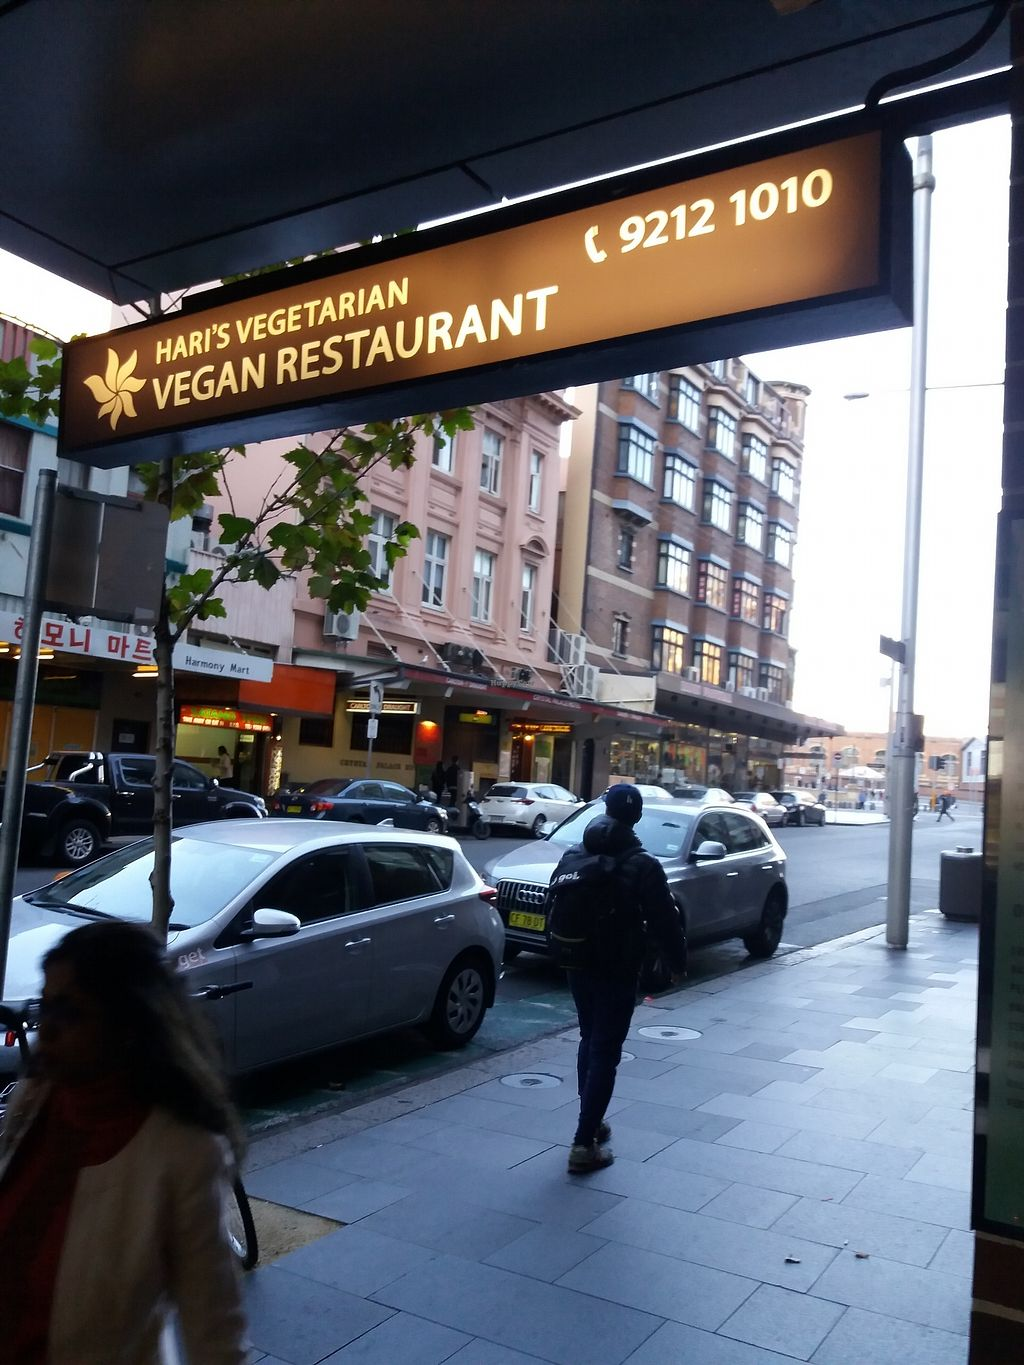 """Photo of Hari's Vegetarian  by <a href=""""/members/profile/veganvirtues"""">veganvirtues</a> <br/>Signage <br/> July 11, 2017  - <a href='/contact/abuse/image/32555/279000'>Report</a>"""